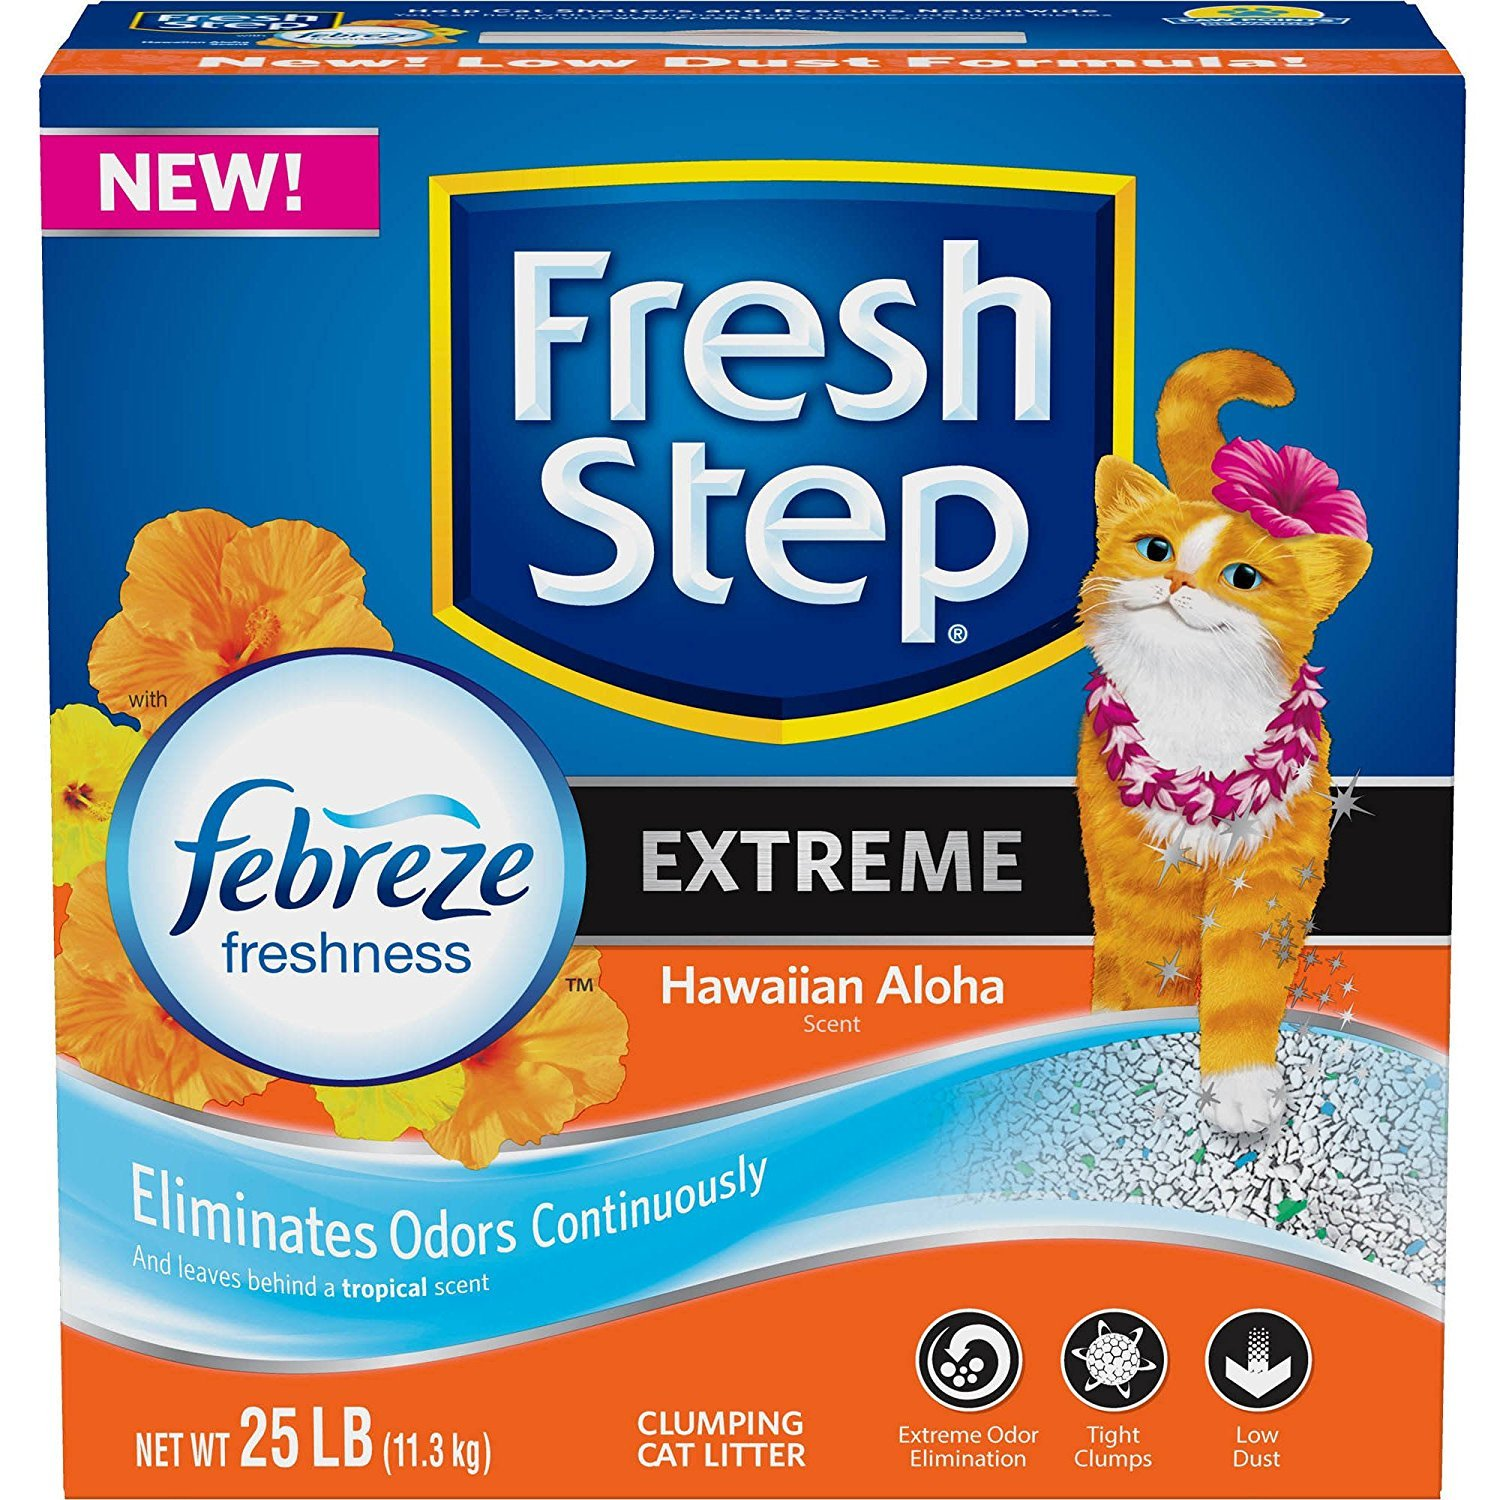 Fresh Step Extreme with Febreze Freshness Clumping Cat Litter 25 lbs by Fresh Step